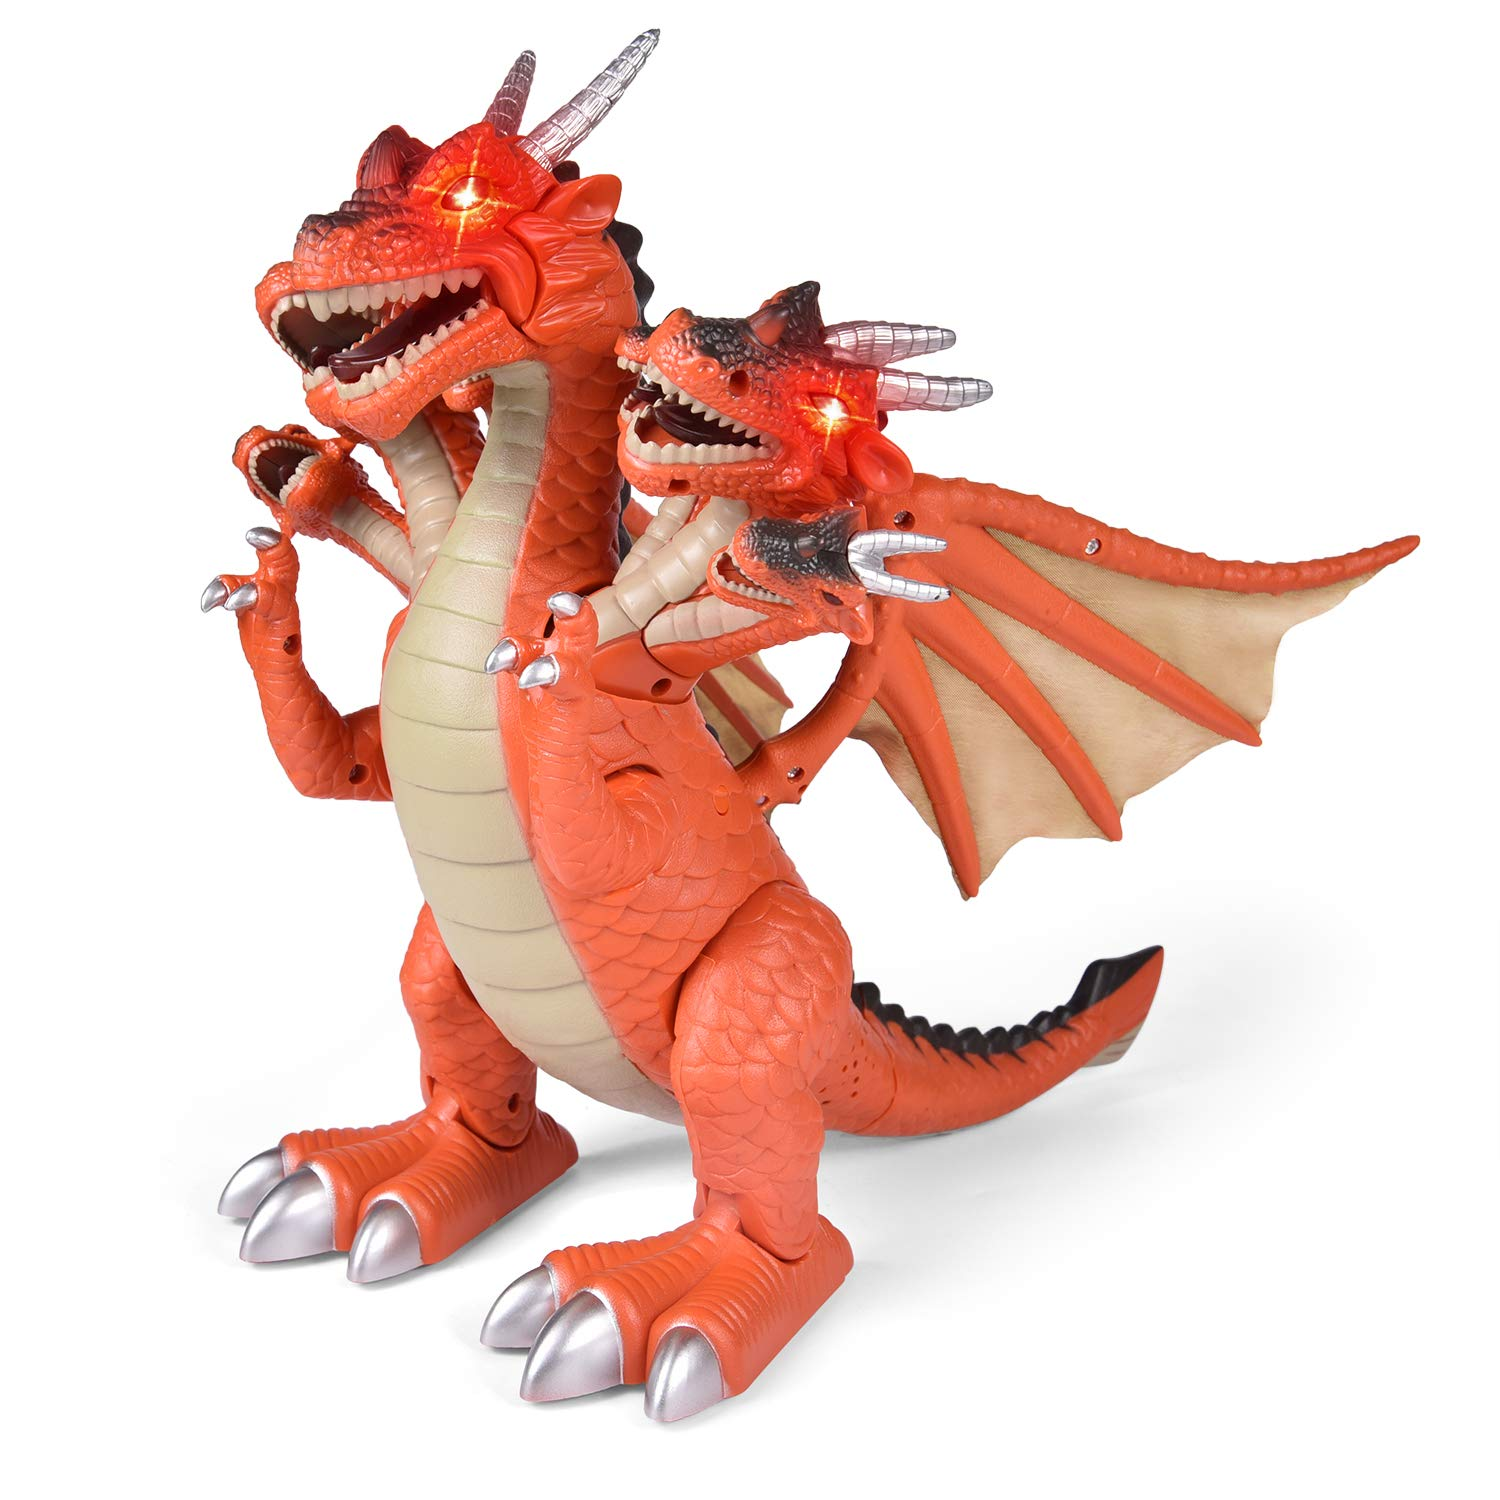 Dragon Toys for Boys Seven Heads Walking Dragon 11.8 L 11.4 H Large Size with Lights and Sounds Dinosaur Toys for Kids